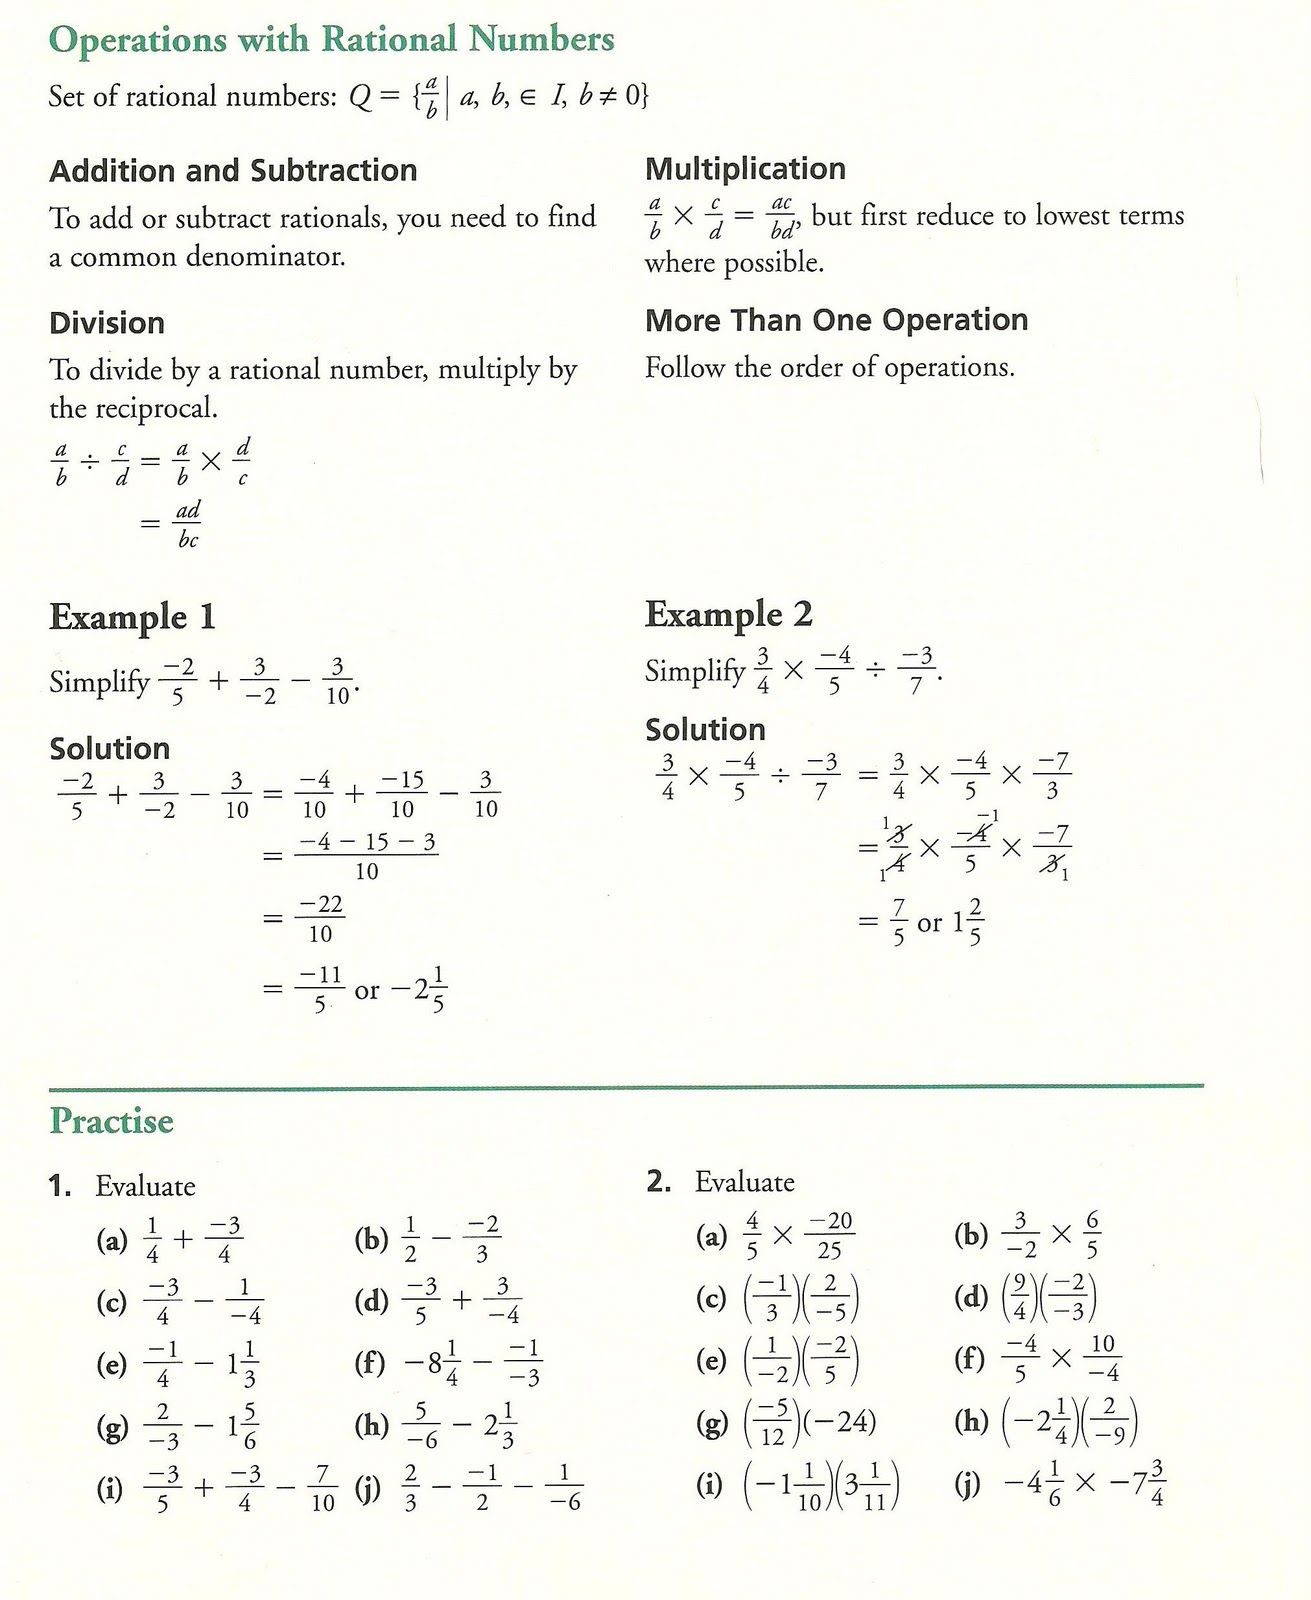 Grade 10 Academic Math Fractions Practice 10th Grade Math Worksheets Math Worksheets Mathematics Education